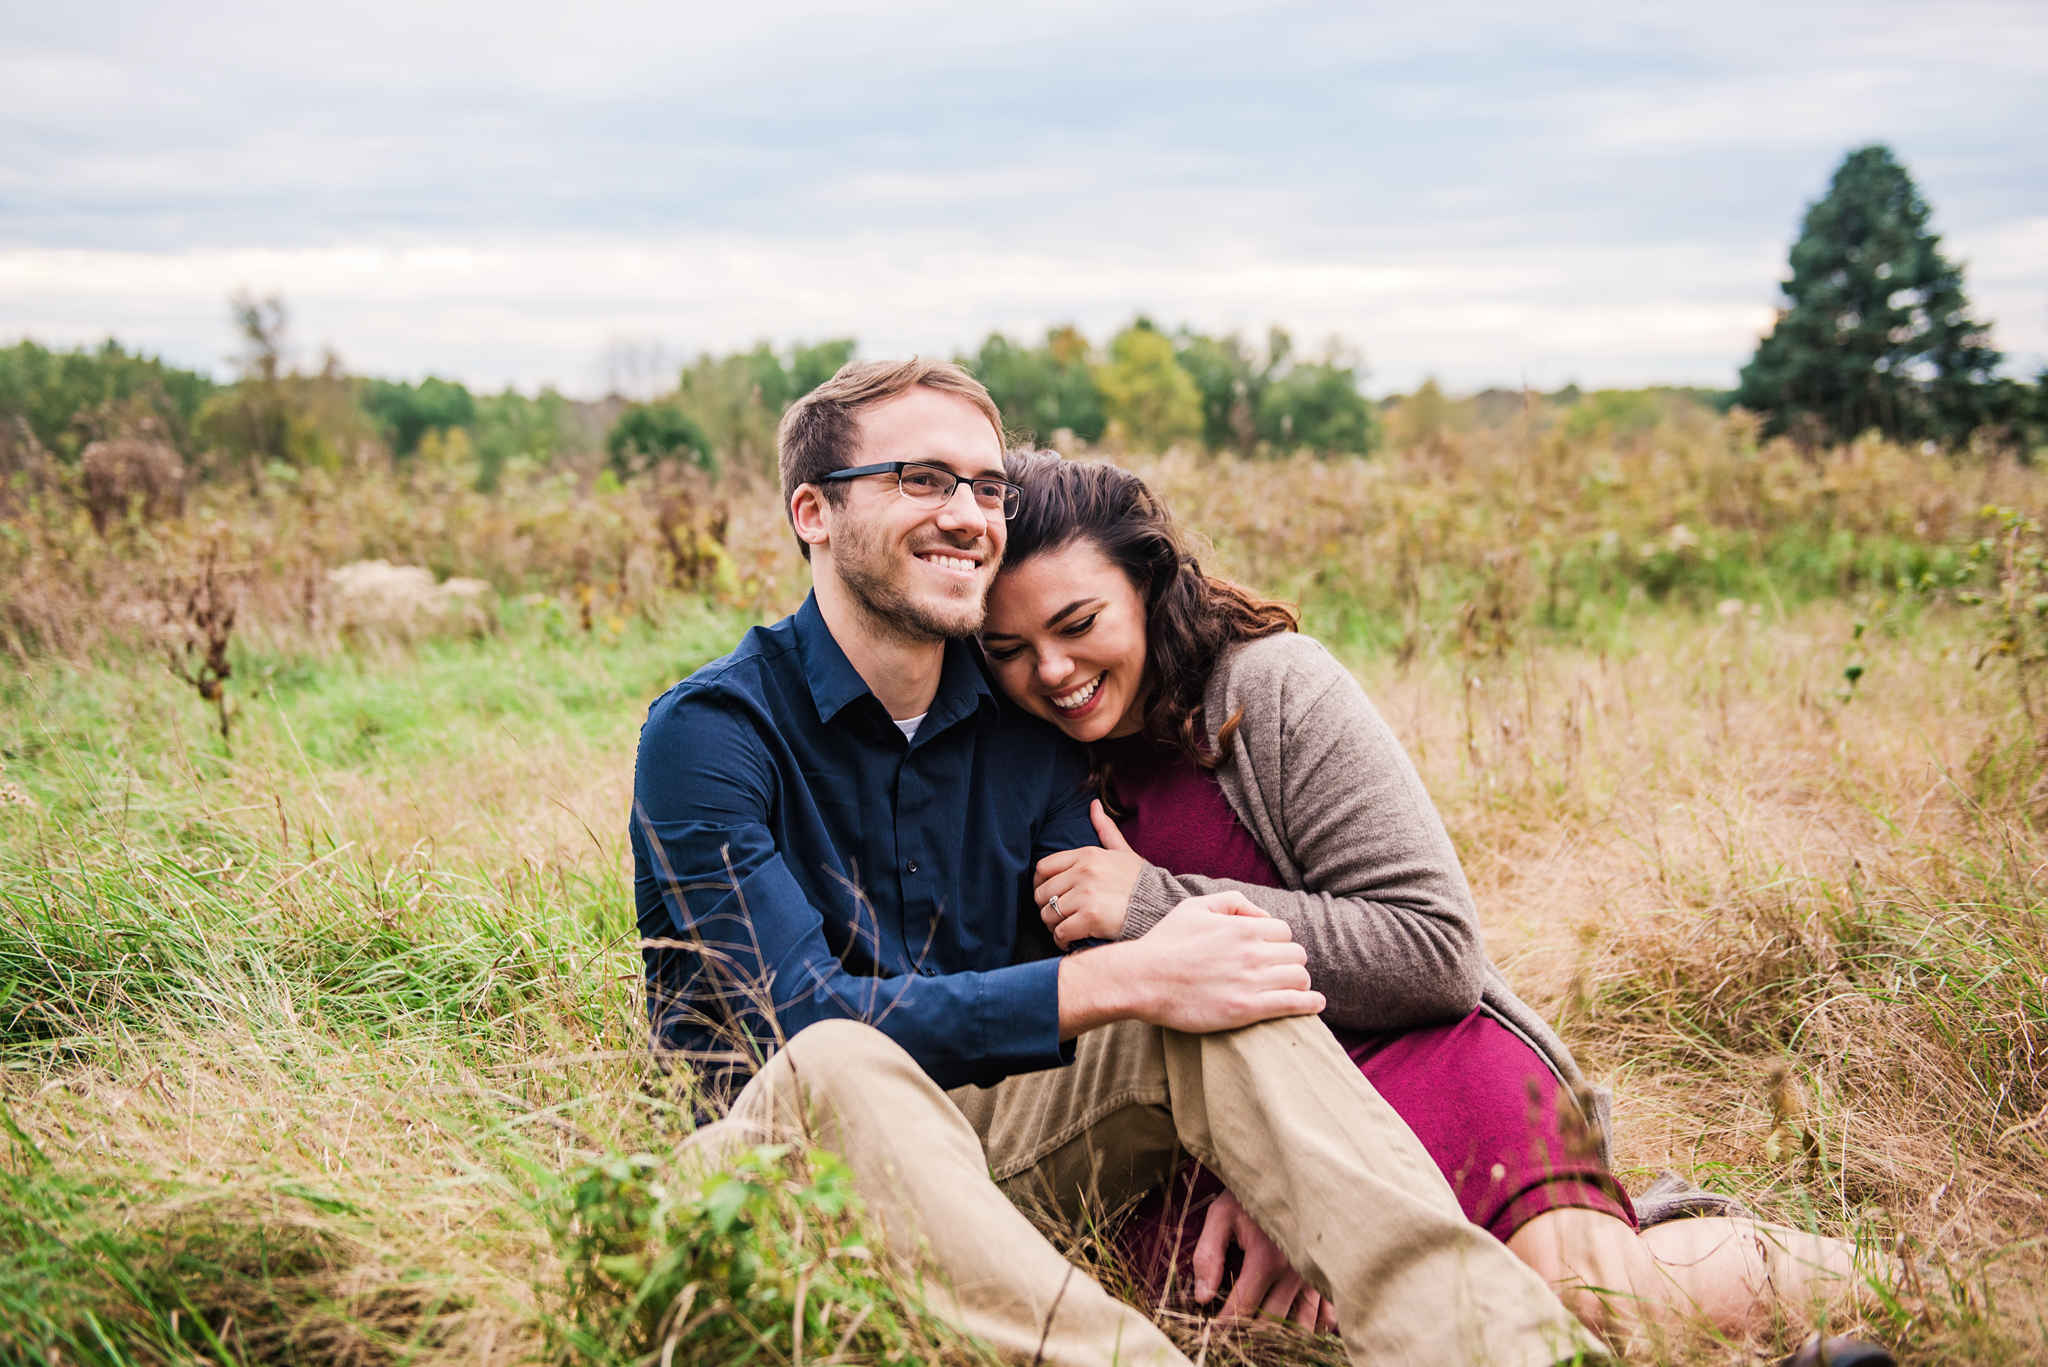 Mendon_Ponds_Park_Rochester_Engagement_Session_JILL_STUDIO_Rochester_NY_Photographer_DSC_5363.jpg